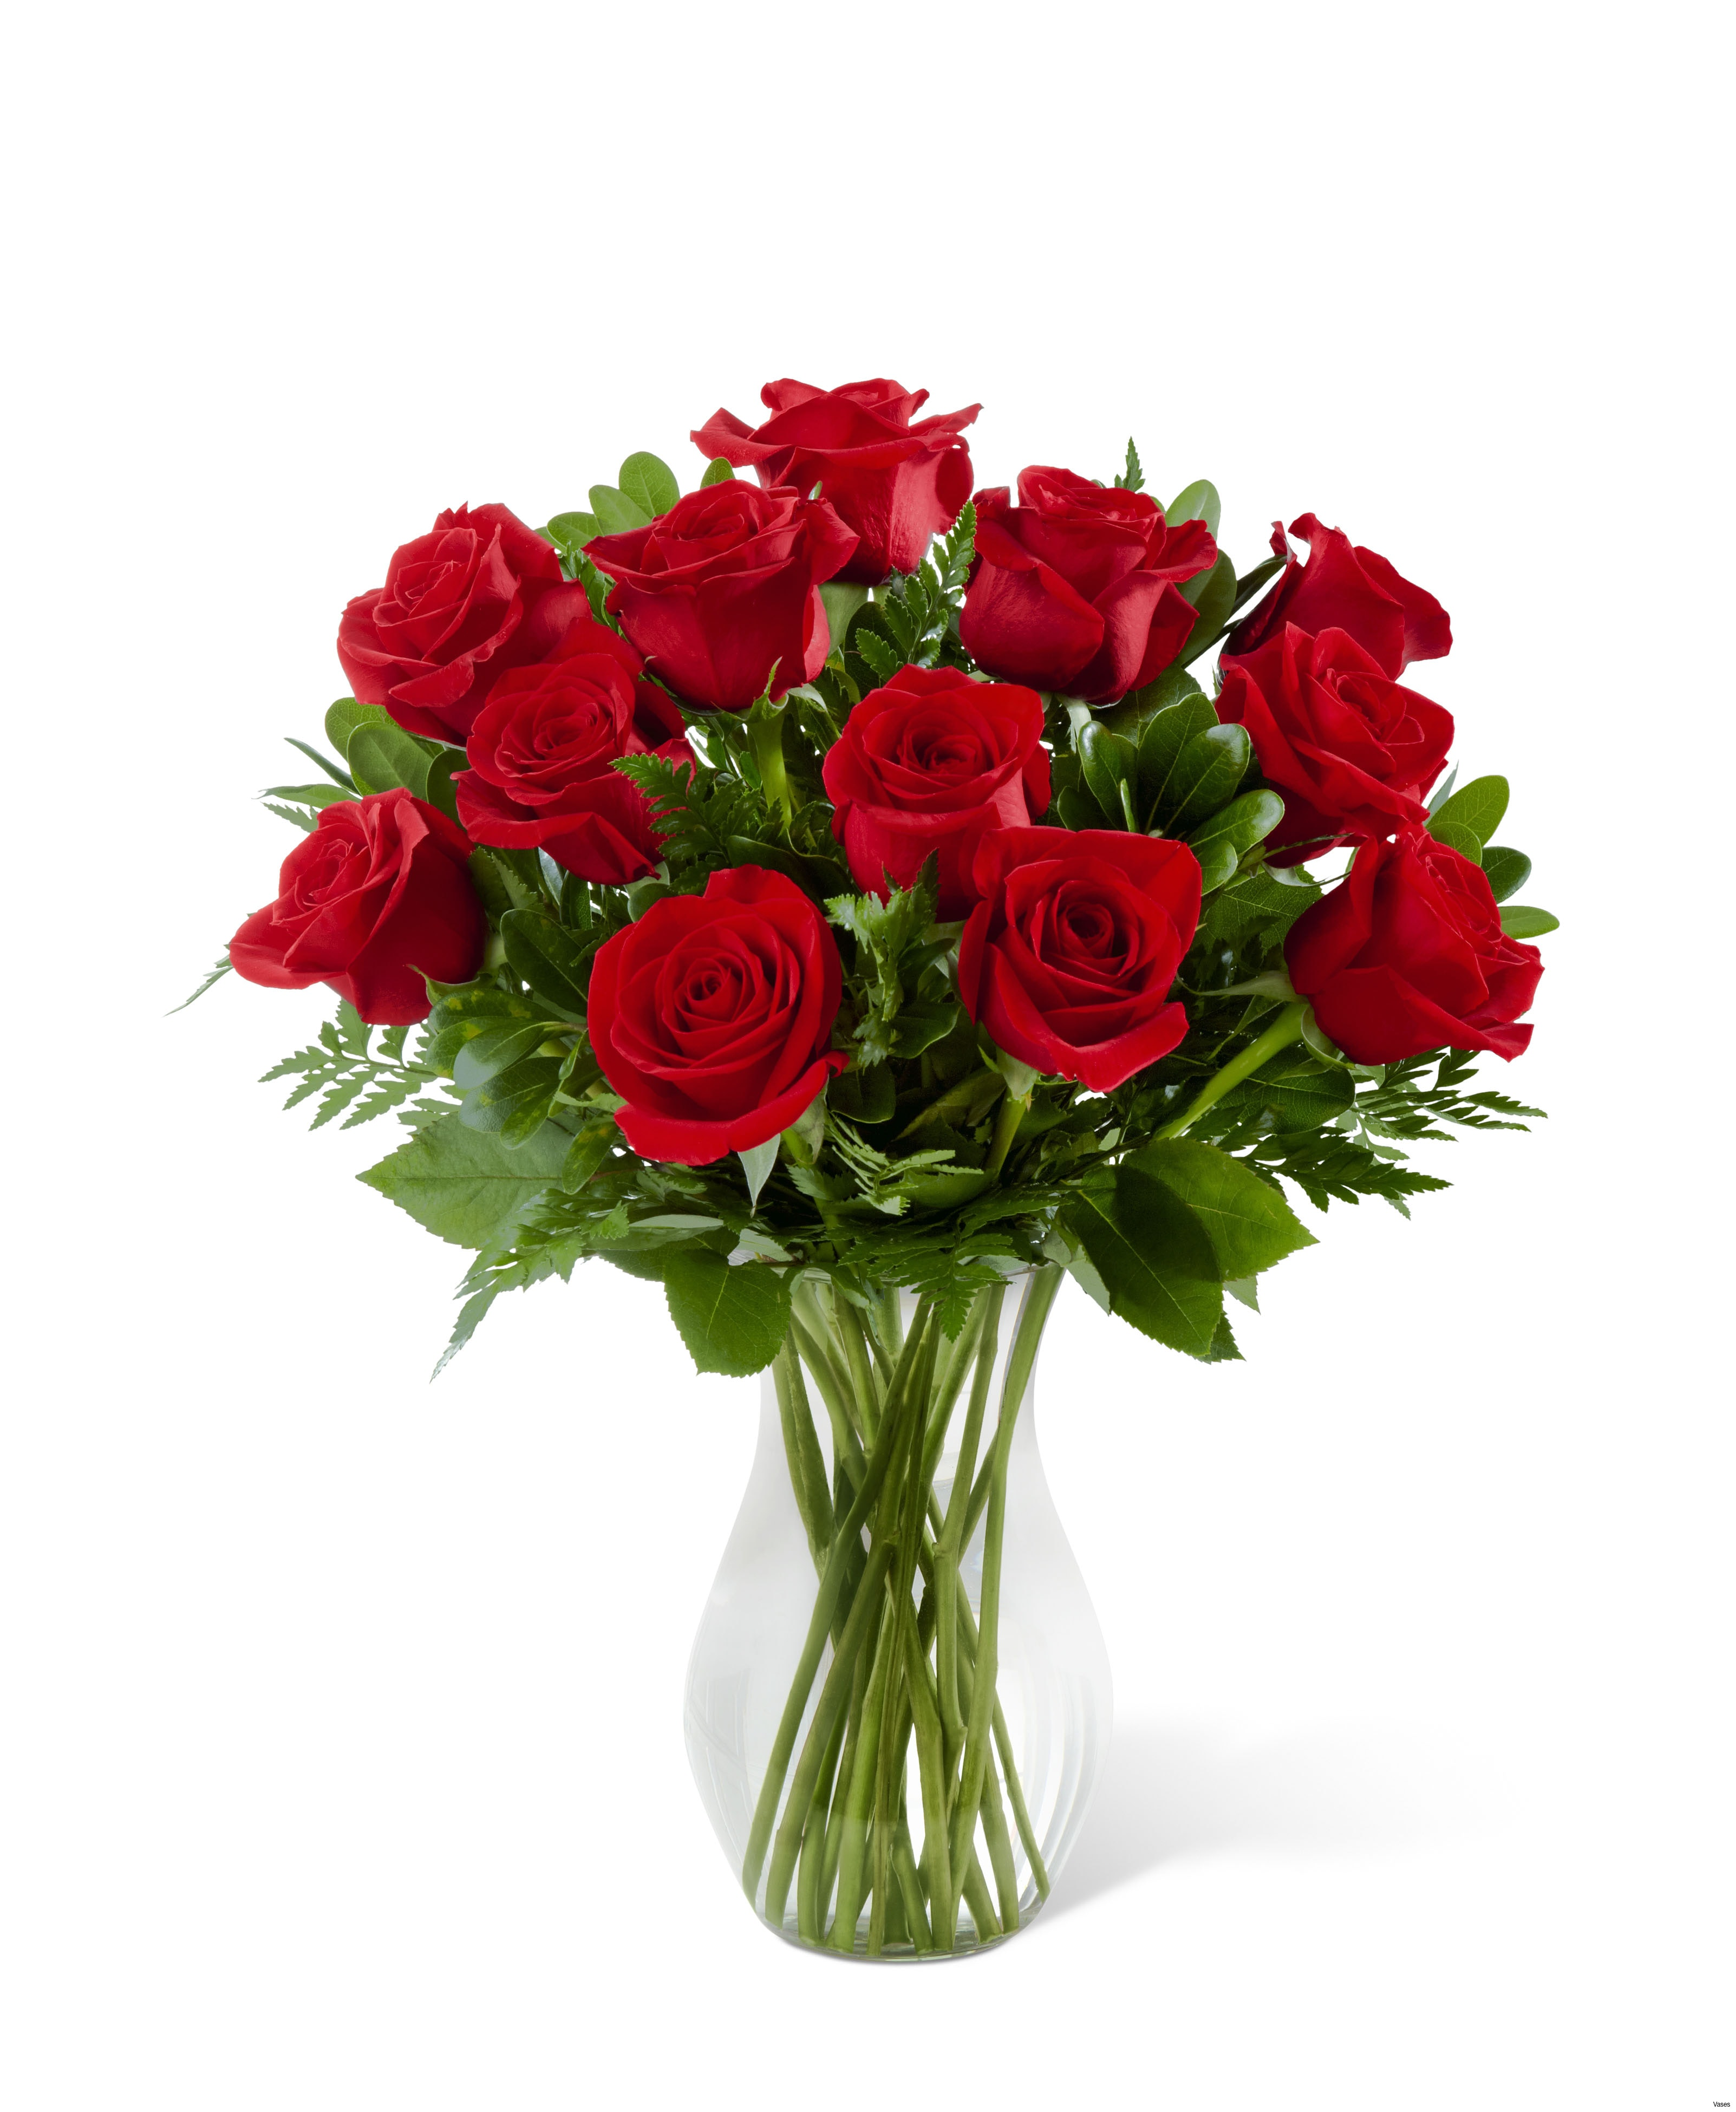 Bouquet Of Roses PNG HD - 142843